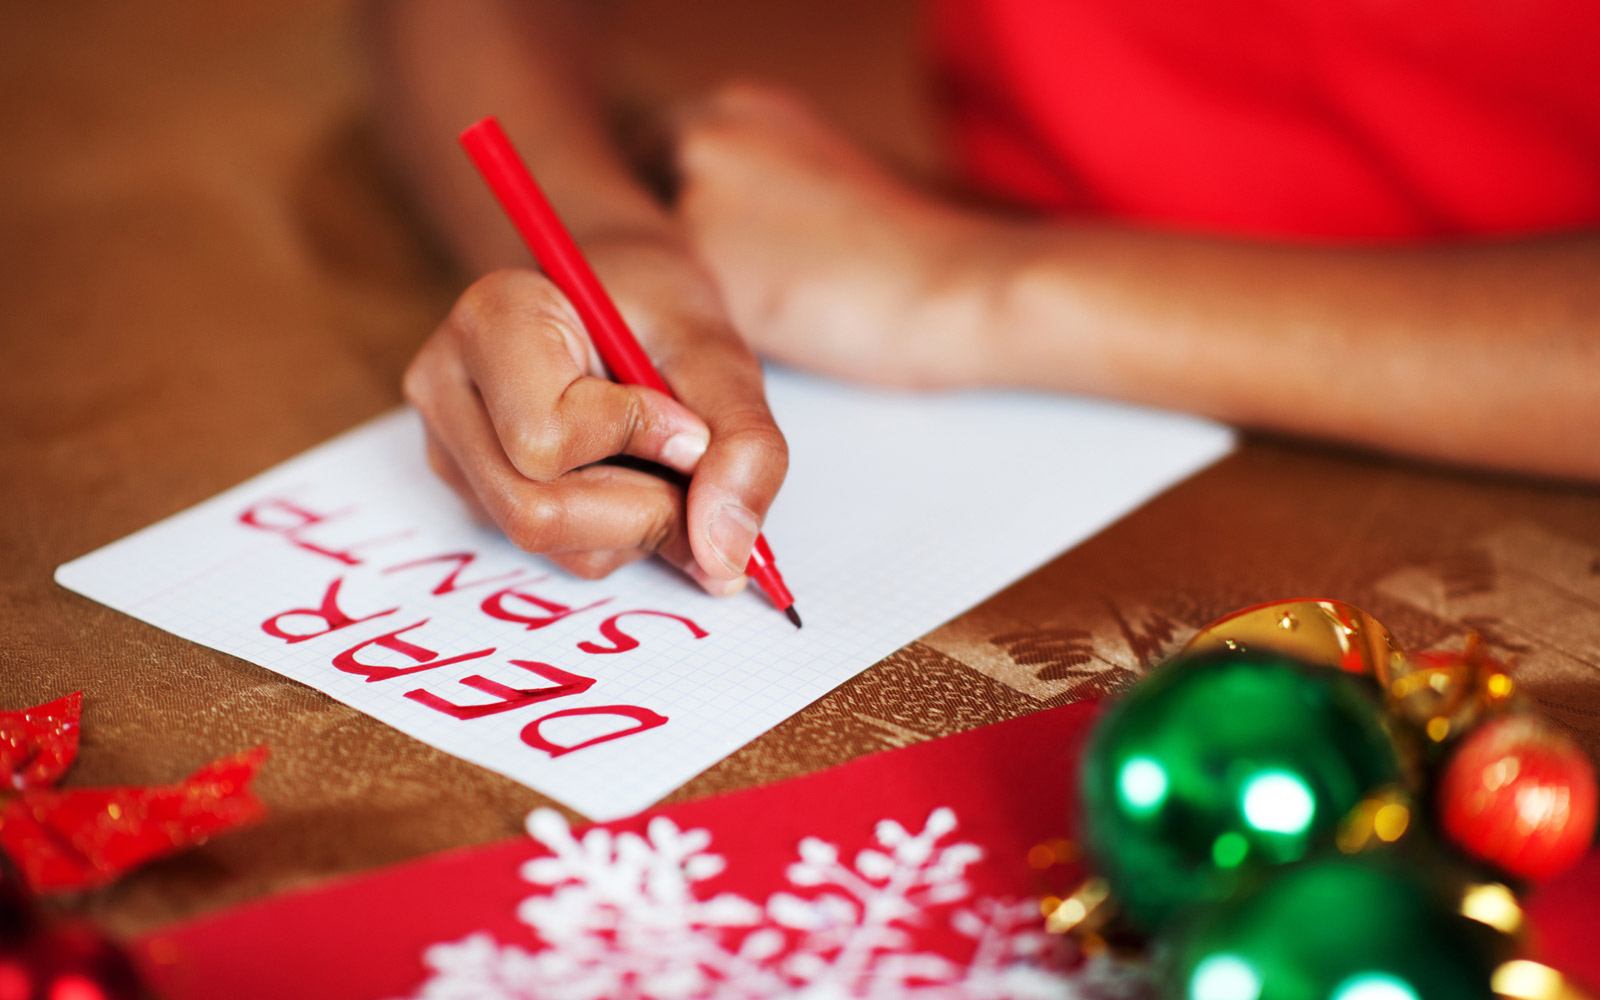 Unrecognizable child writing a letter to Santa Claus and making a present wish list.